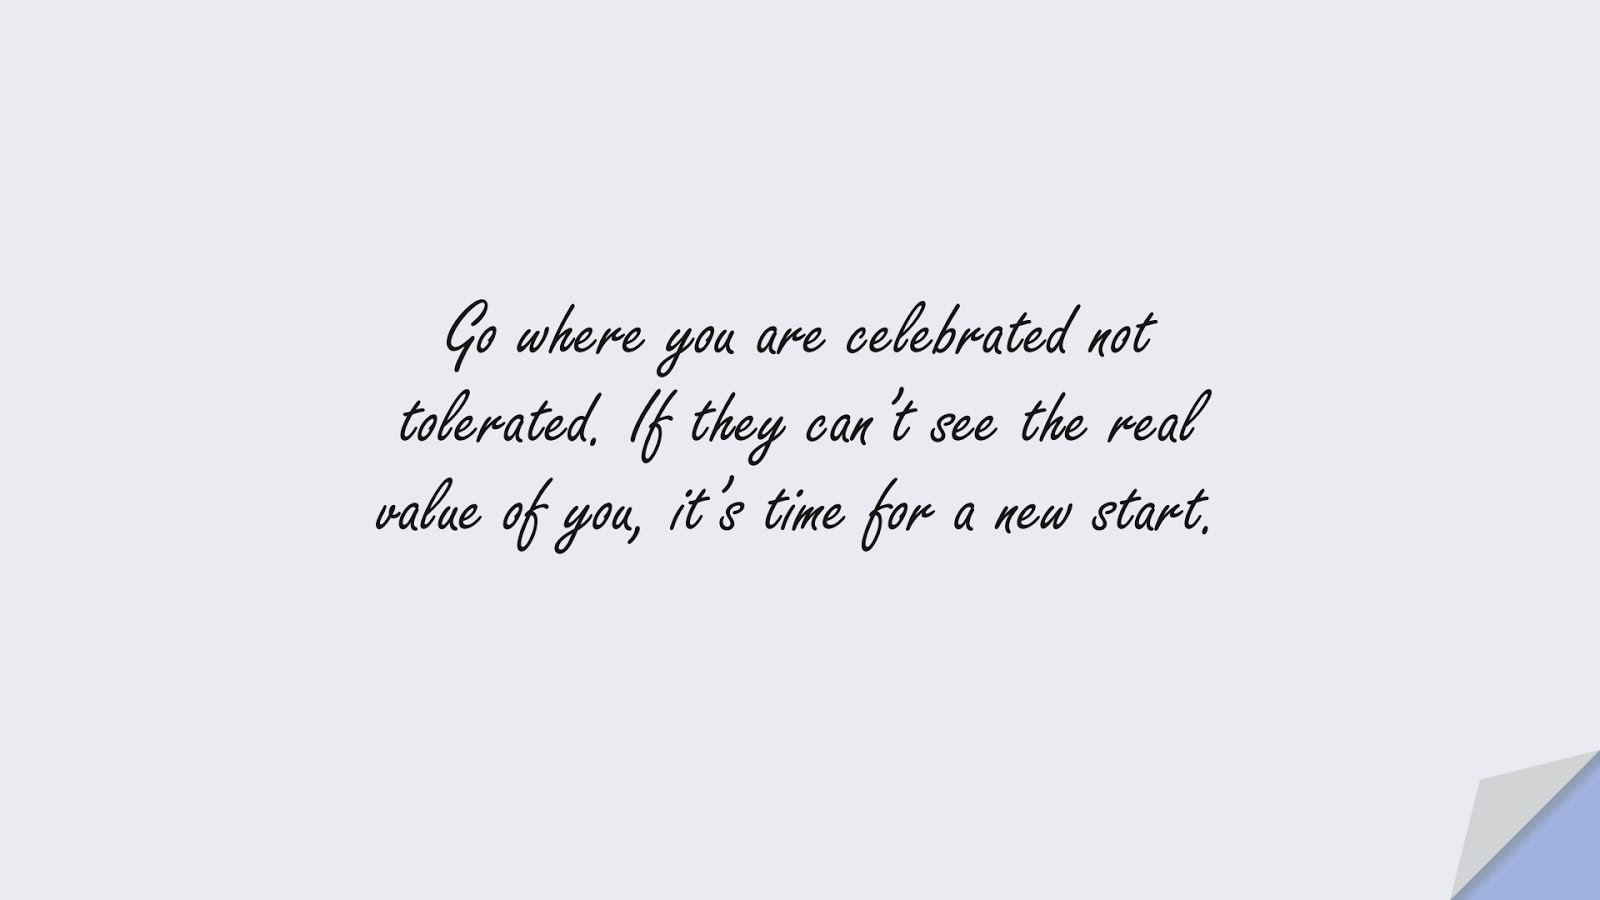 Go where you are celebrated not tolerated. If they can't see the real value of you, it's time for a new start.FALSE